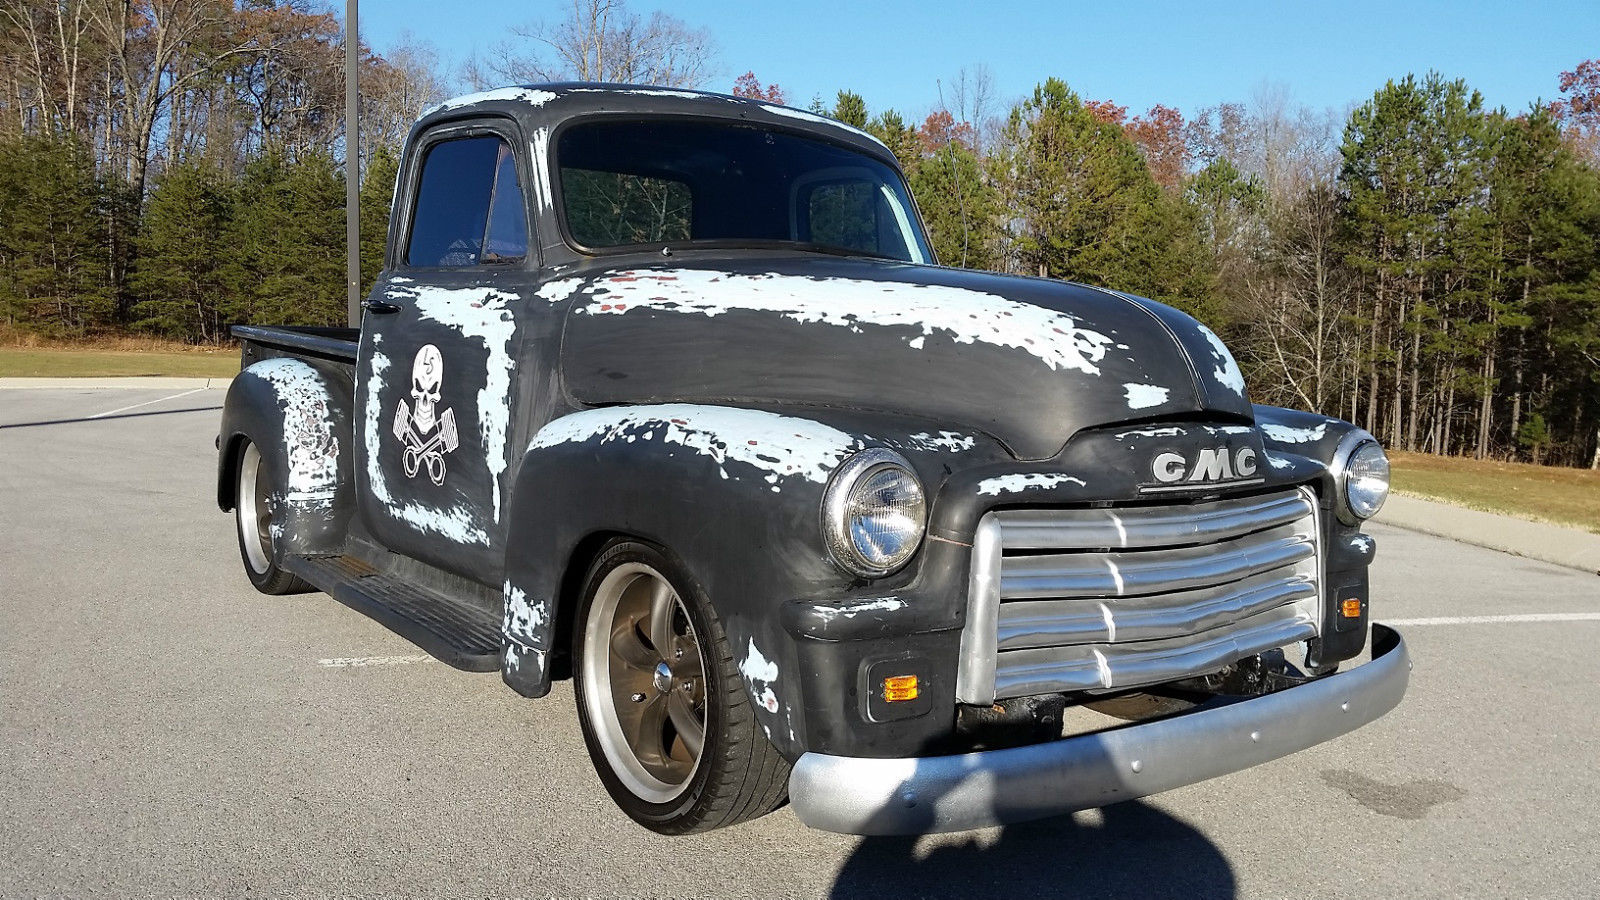 1954 Gmc Truck Frame Swap The Car 1949 Chevy 762413 25 Source Chassis